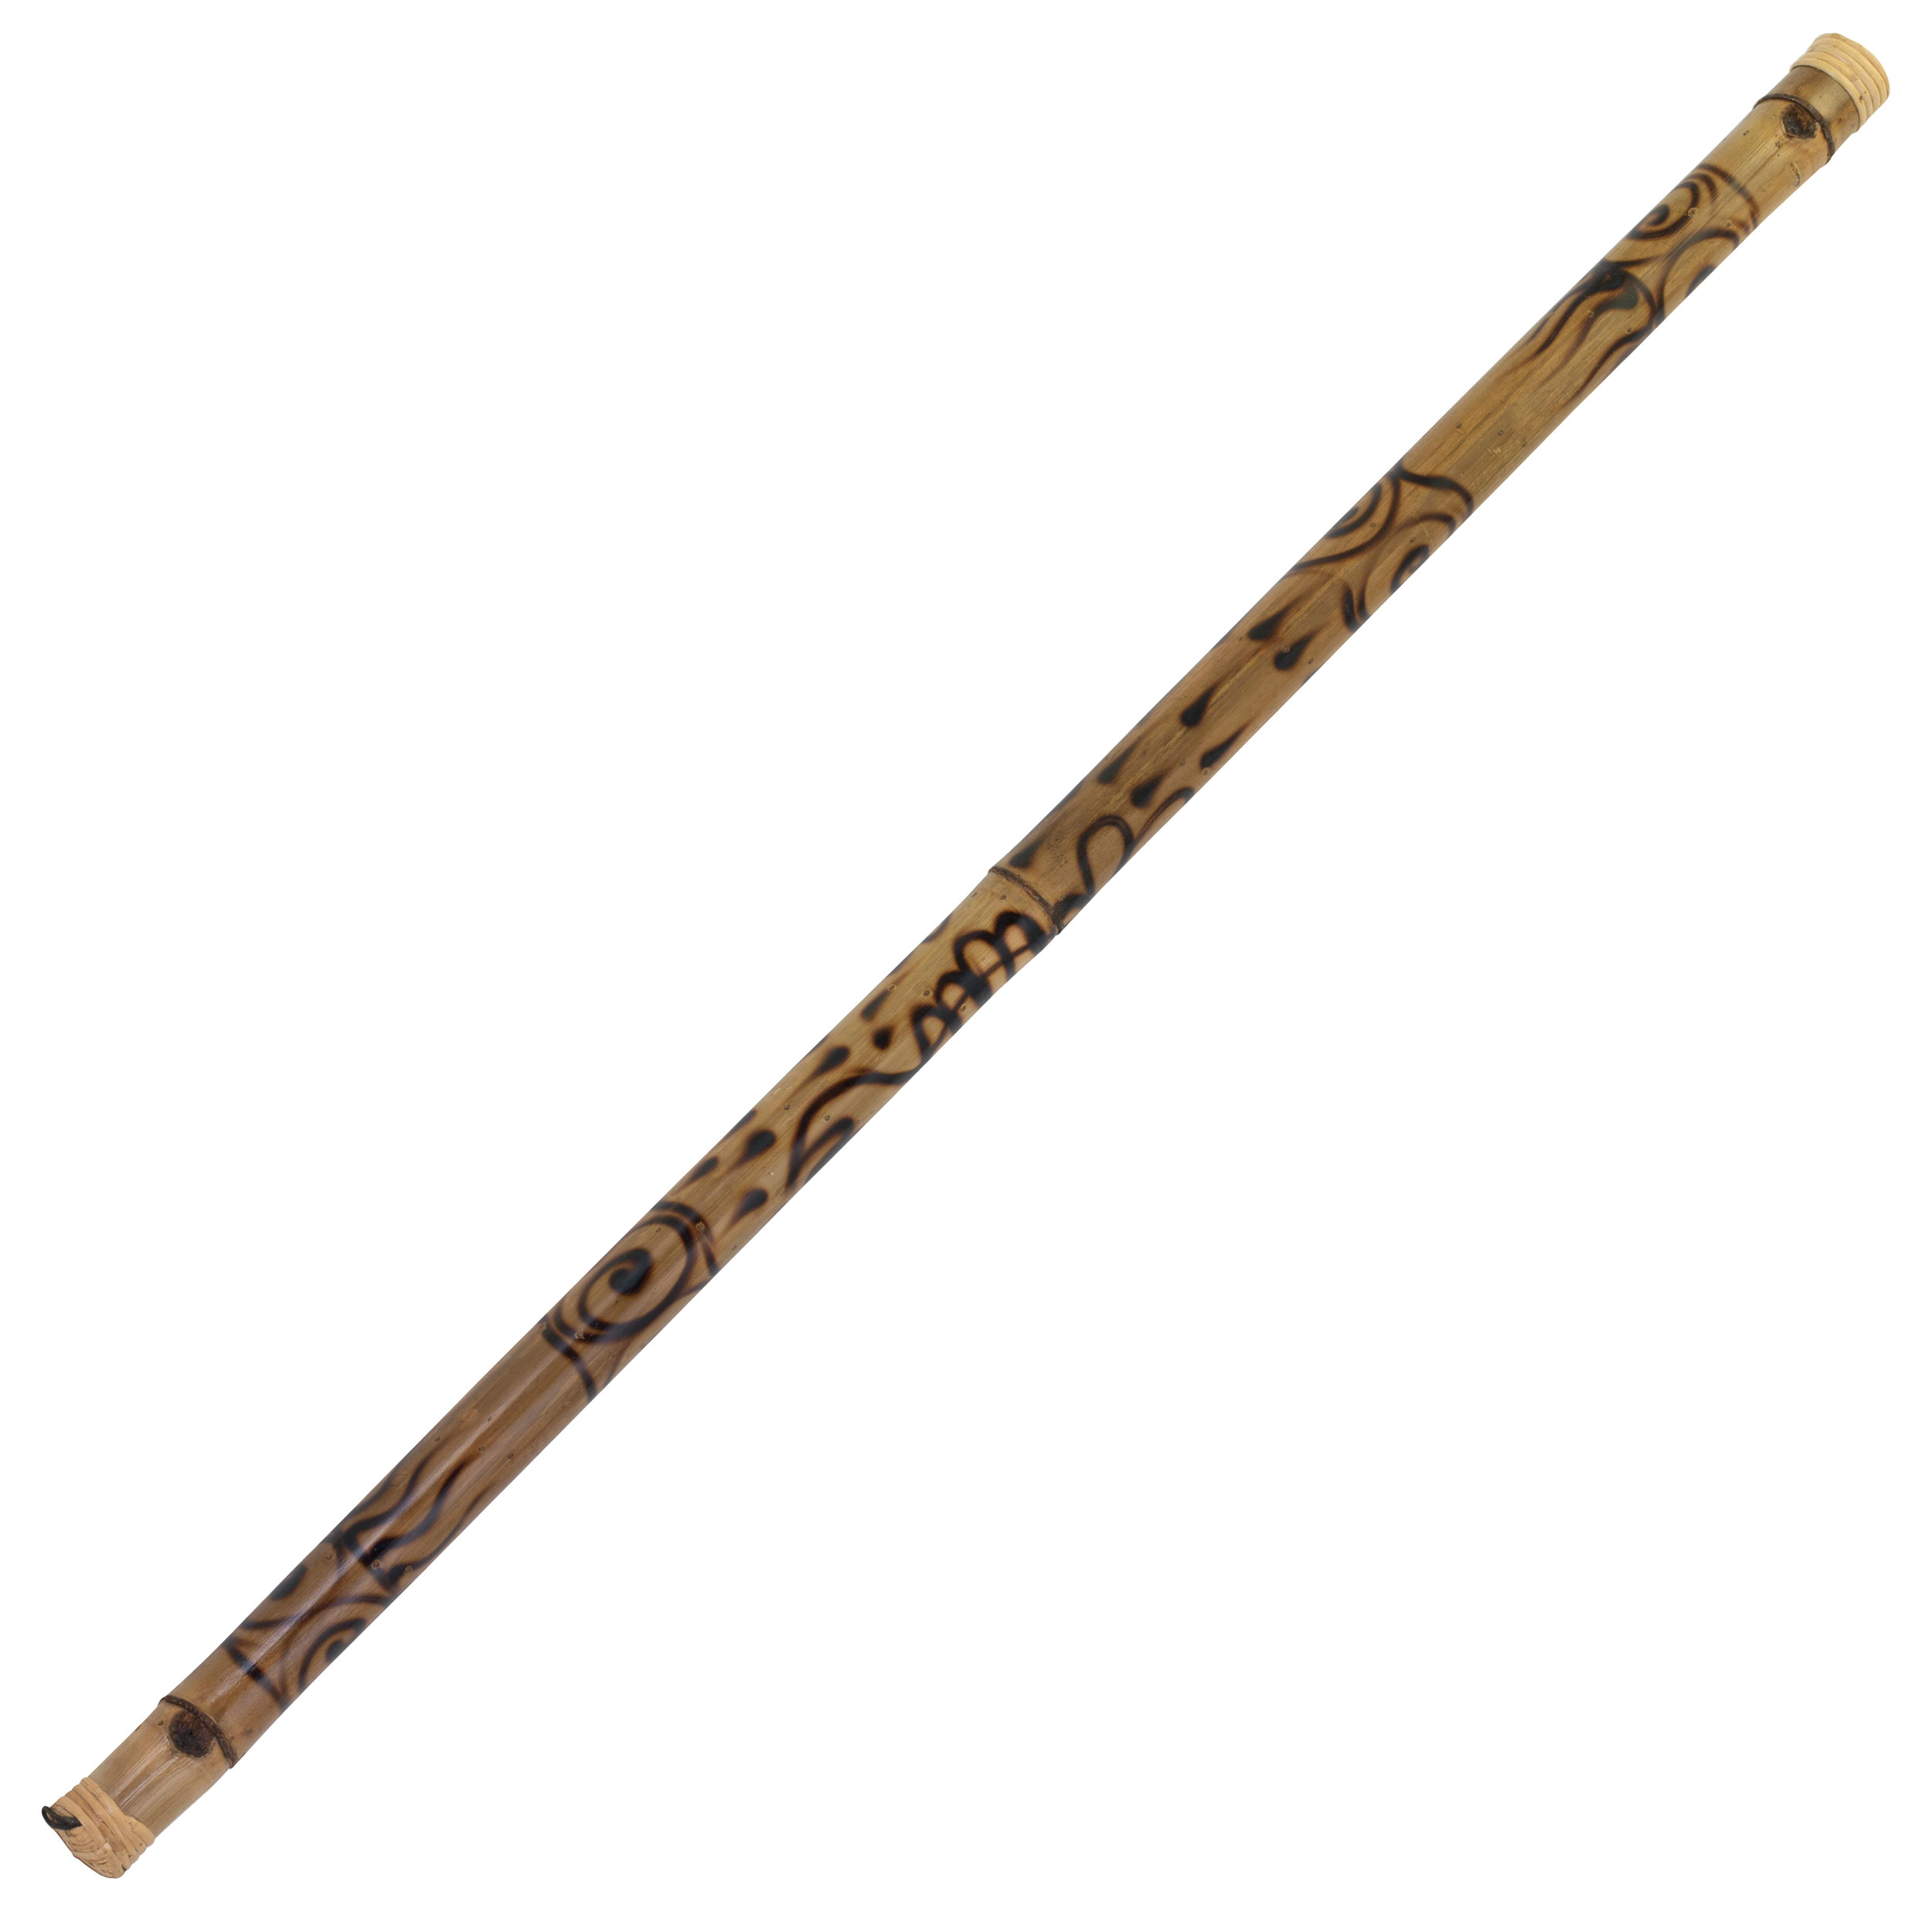 "Pearl 60"" Bamboo Rainstick with Rhythm Water Woodburned Design"